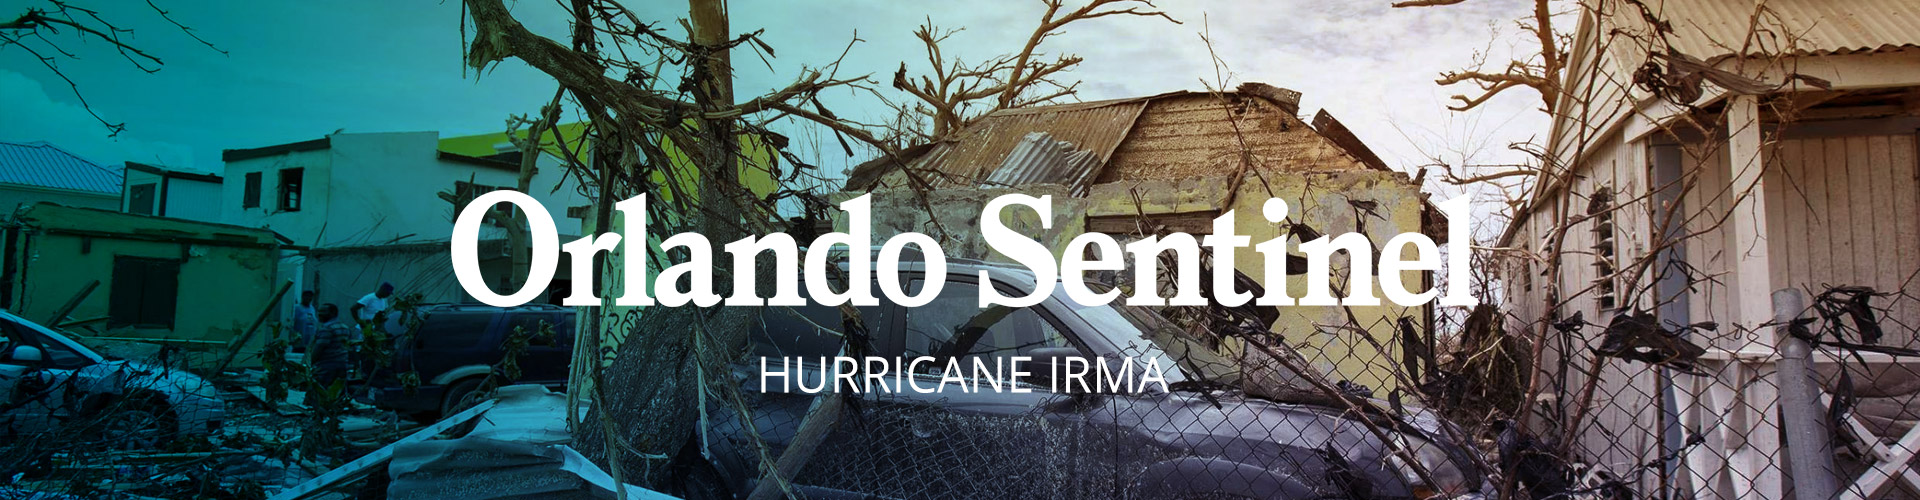 Header image of Orlando Sentinel Launch Special Edition